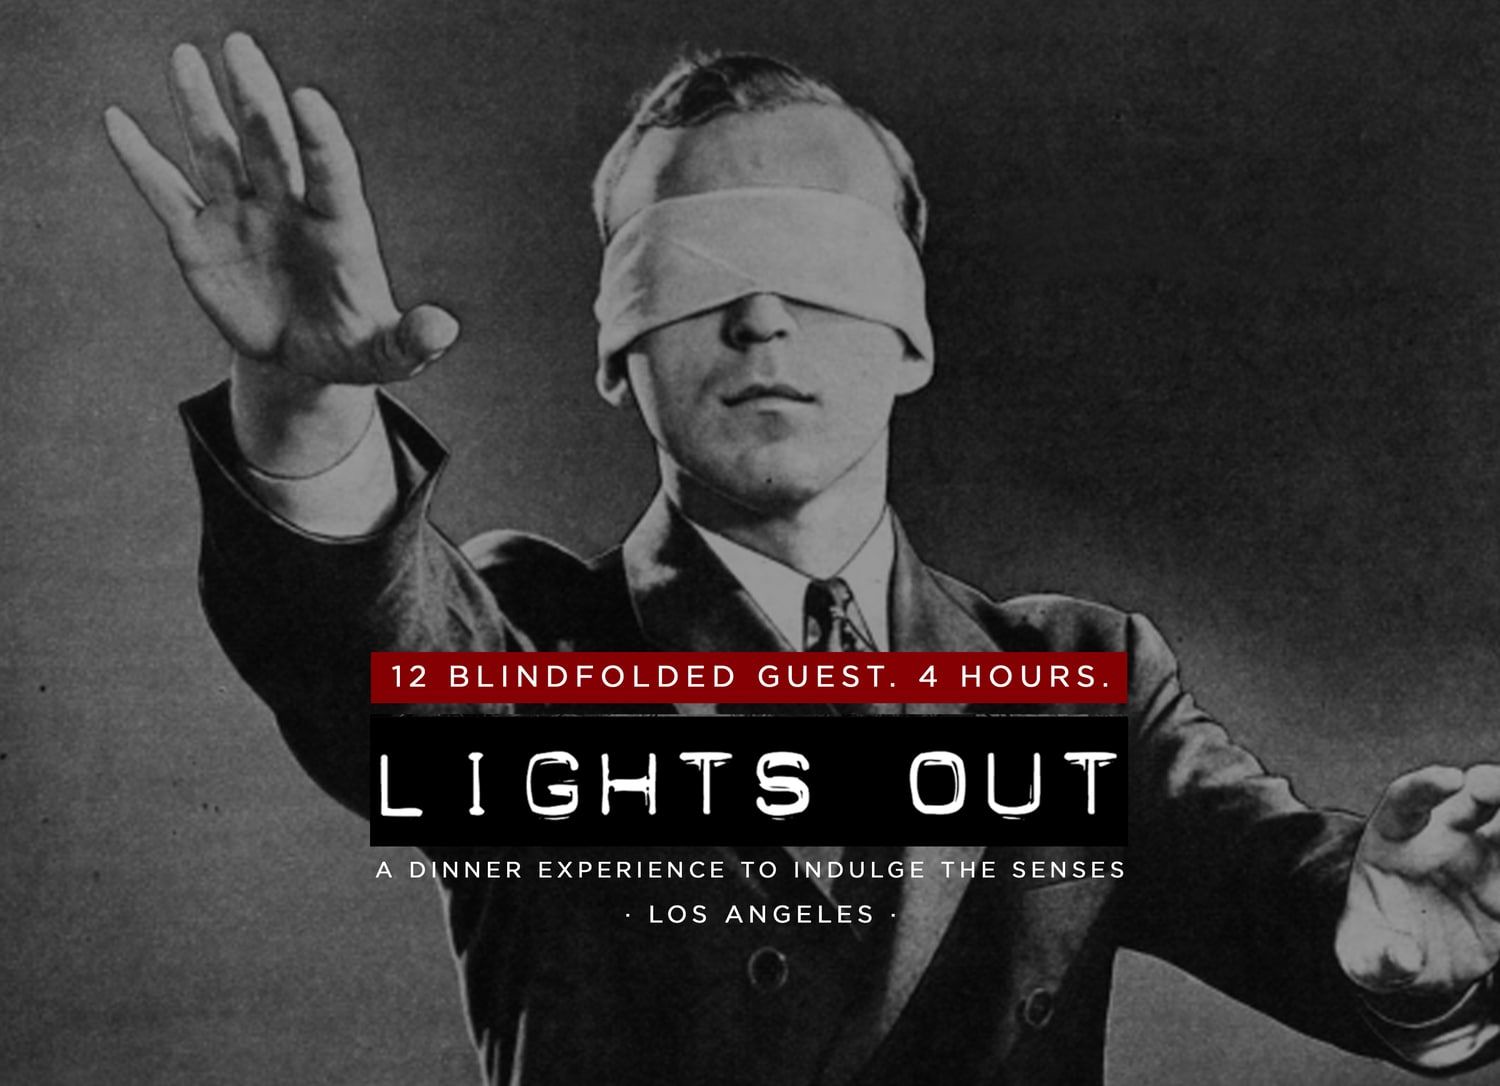 Elk Owl Society - Lights Out - Blindfolded Dinner - Blind Owl